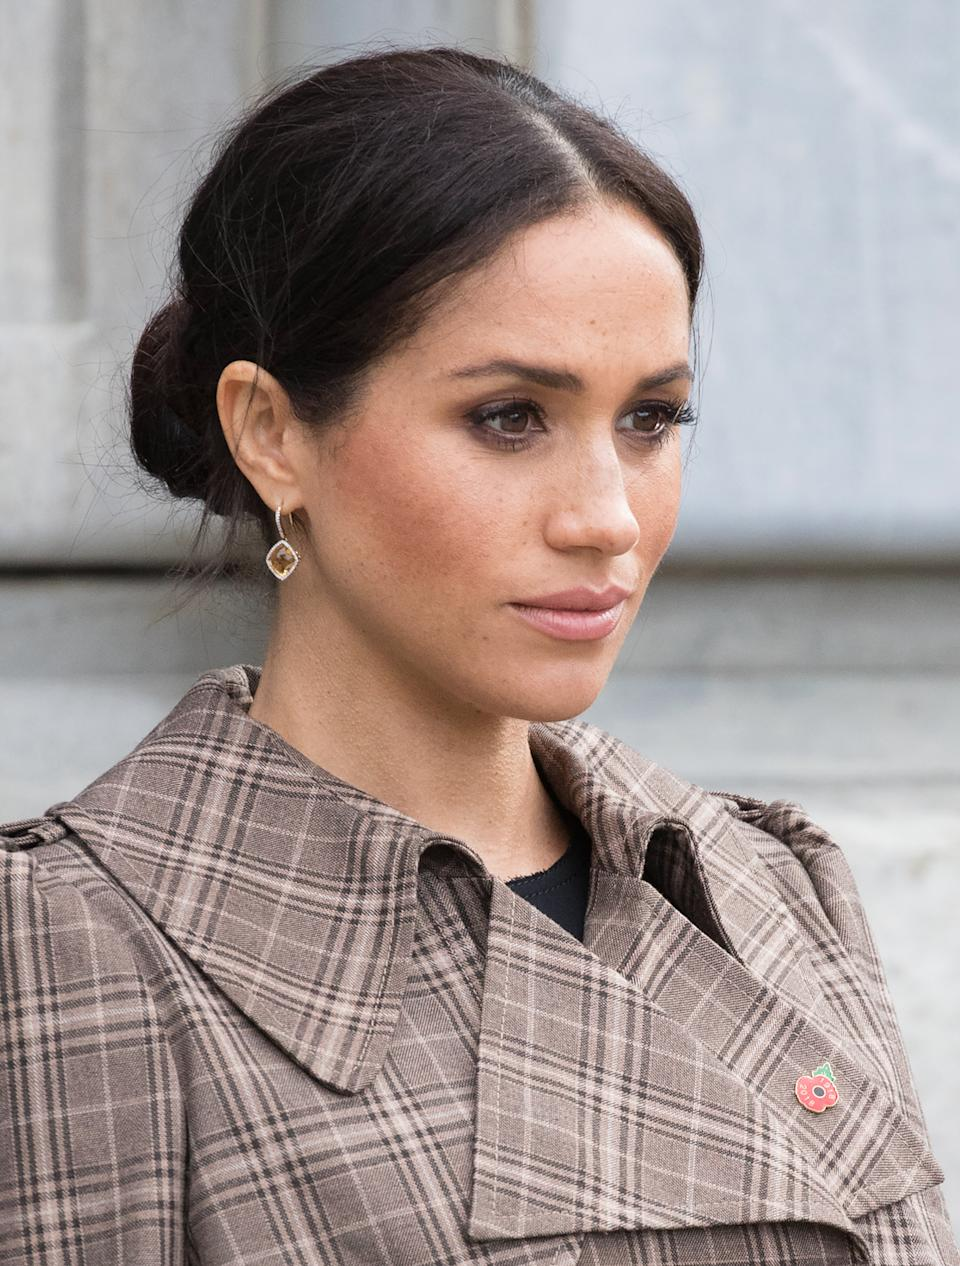 WELLINGTON, NEW ZEALAND - OCTOBER 28:  (NO UK SALES FOR 28 DAYS) Meghan, Duchess of Sussex meetS wellwishers as she visits the National War Memorial on October 28, 2018 in Wellington, New Zealand. The Duke and Duchess of Sussex are on their official 16-day Autumn tour visiting cities in Australia, Fiji, Tonga and New Zealand.  (Photo by Pool/Samir Hussein/WireImage)